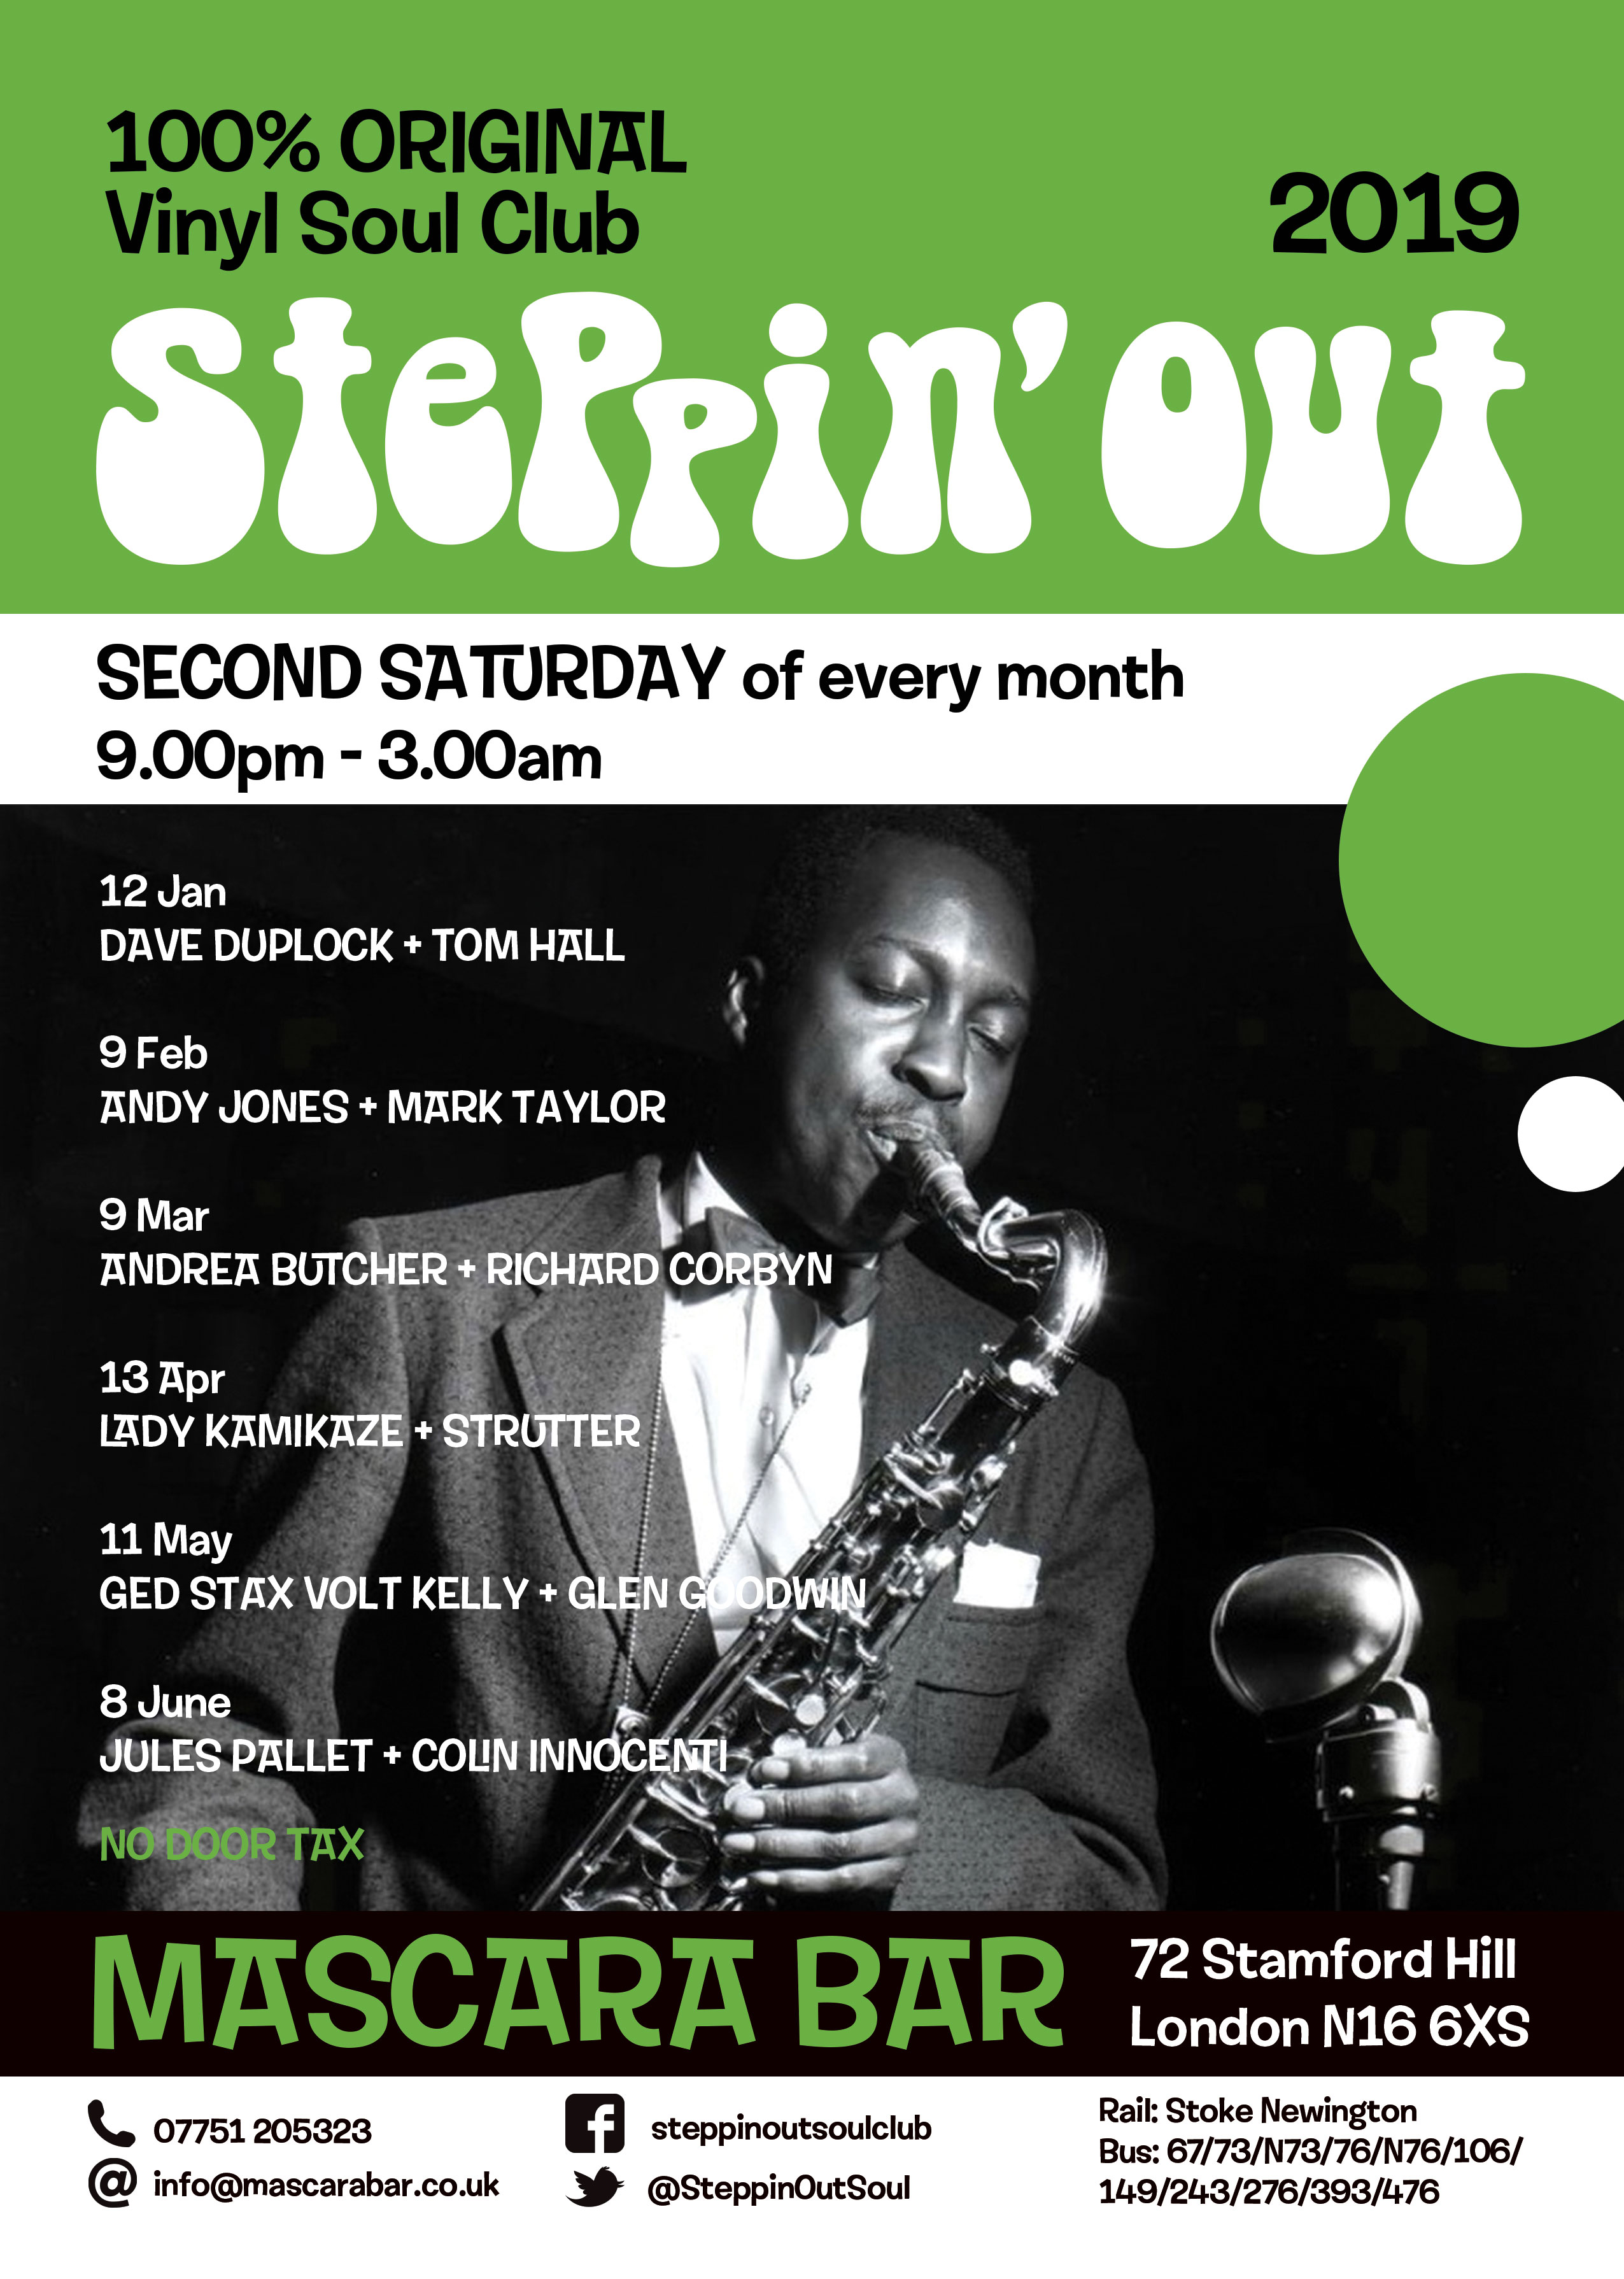 Steppin' Out - Guest Dave Duplock & Big Tony - London N16 6XS - Northern Soul, Vintage / 60s R&B, Crossover Soul, Mod Jazz & Boogaloo. 12/10/19